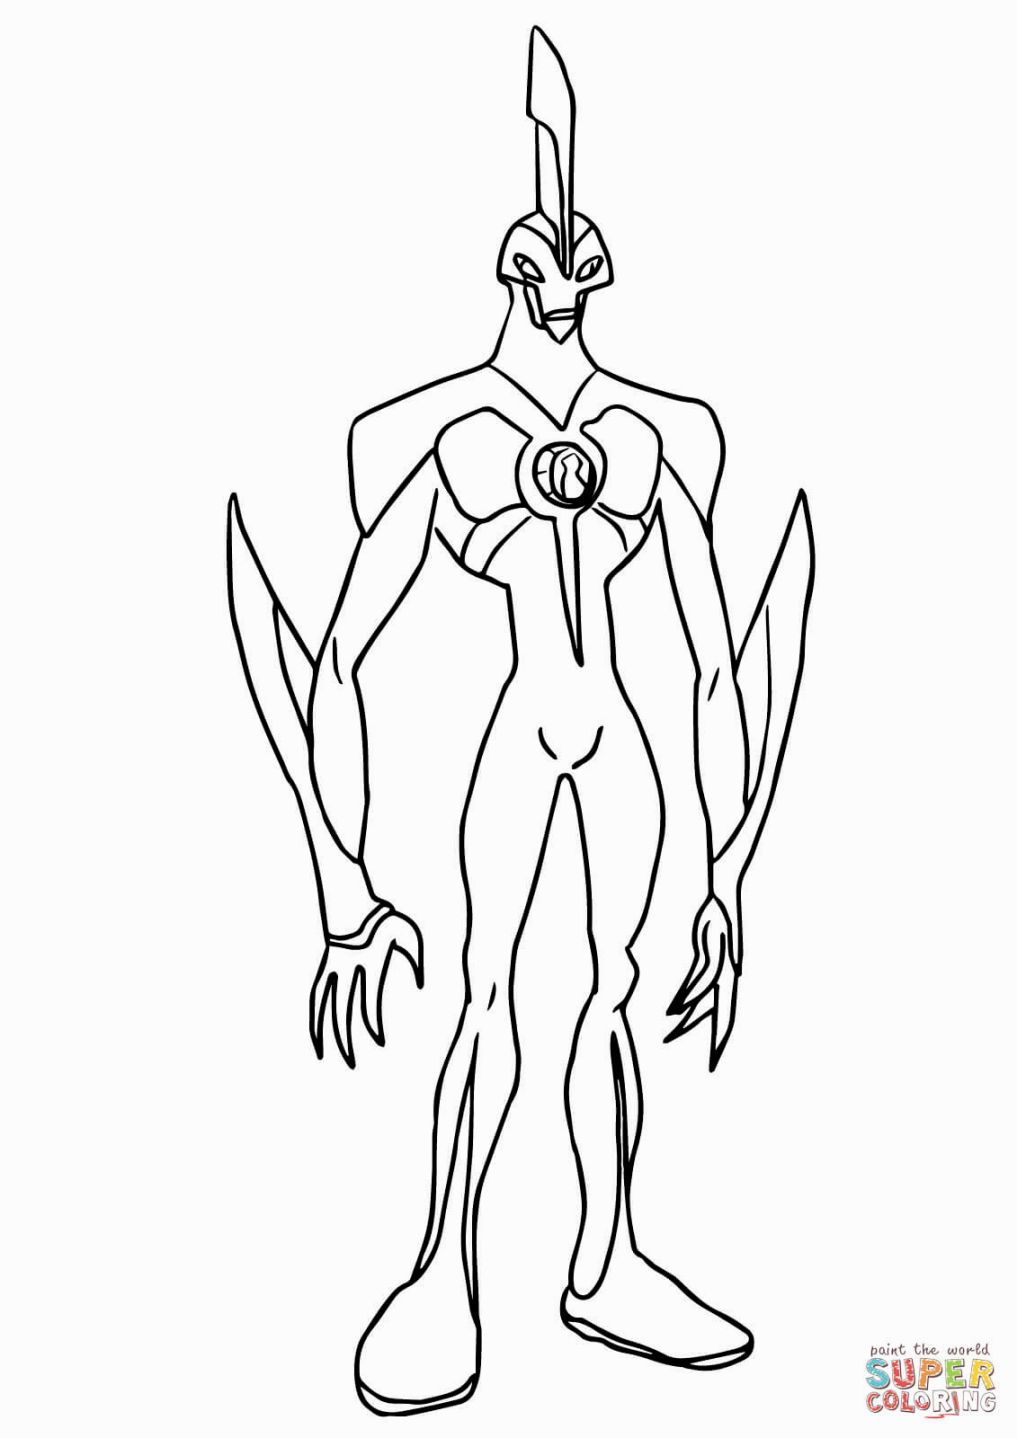 Coloring Ben 10 | Coloring Pages | Pinterest